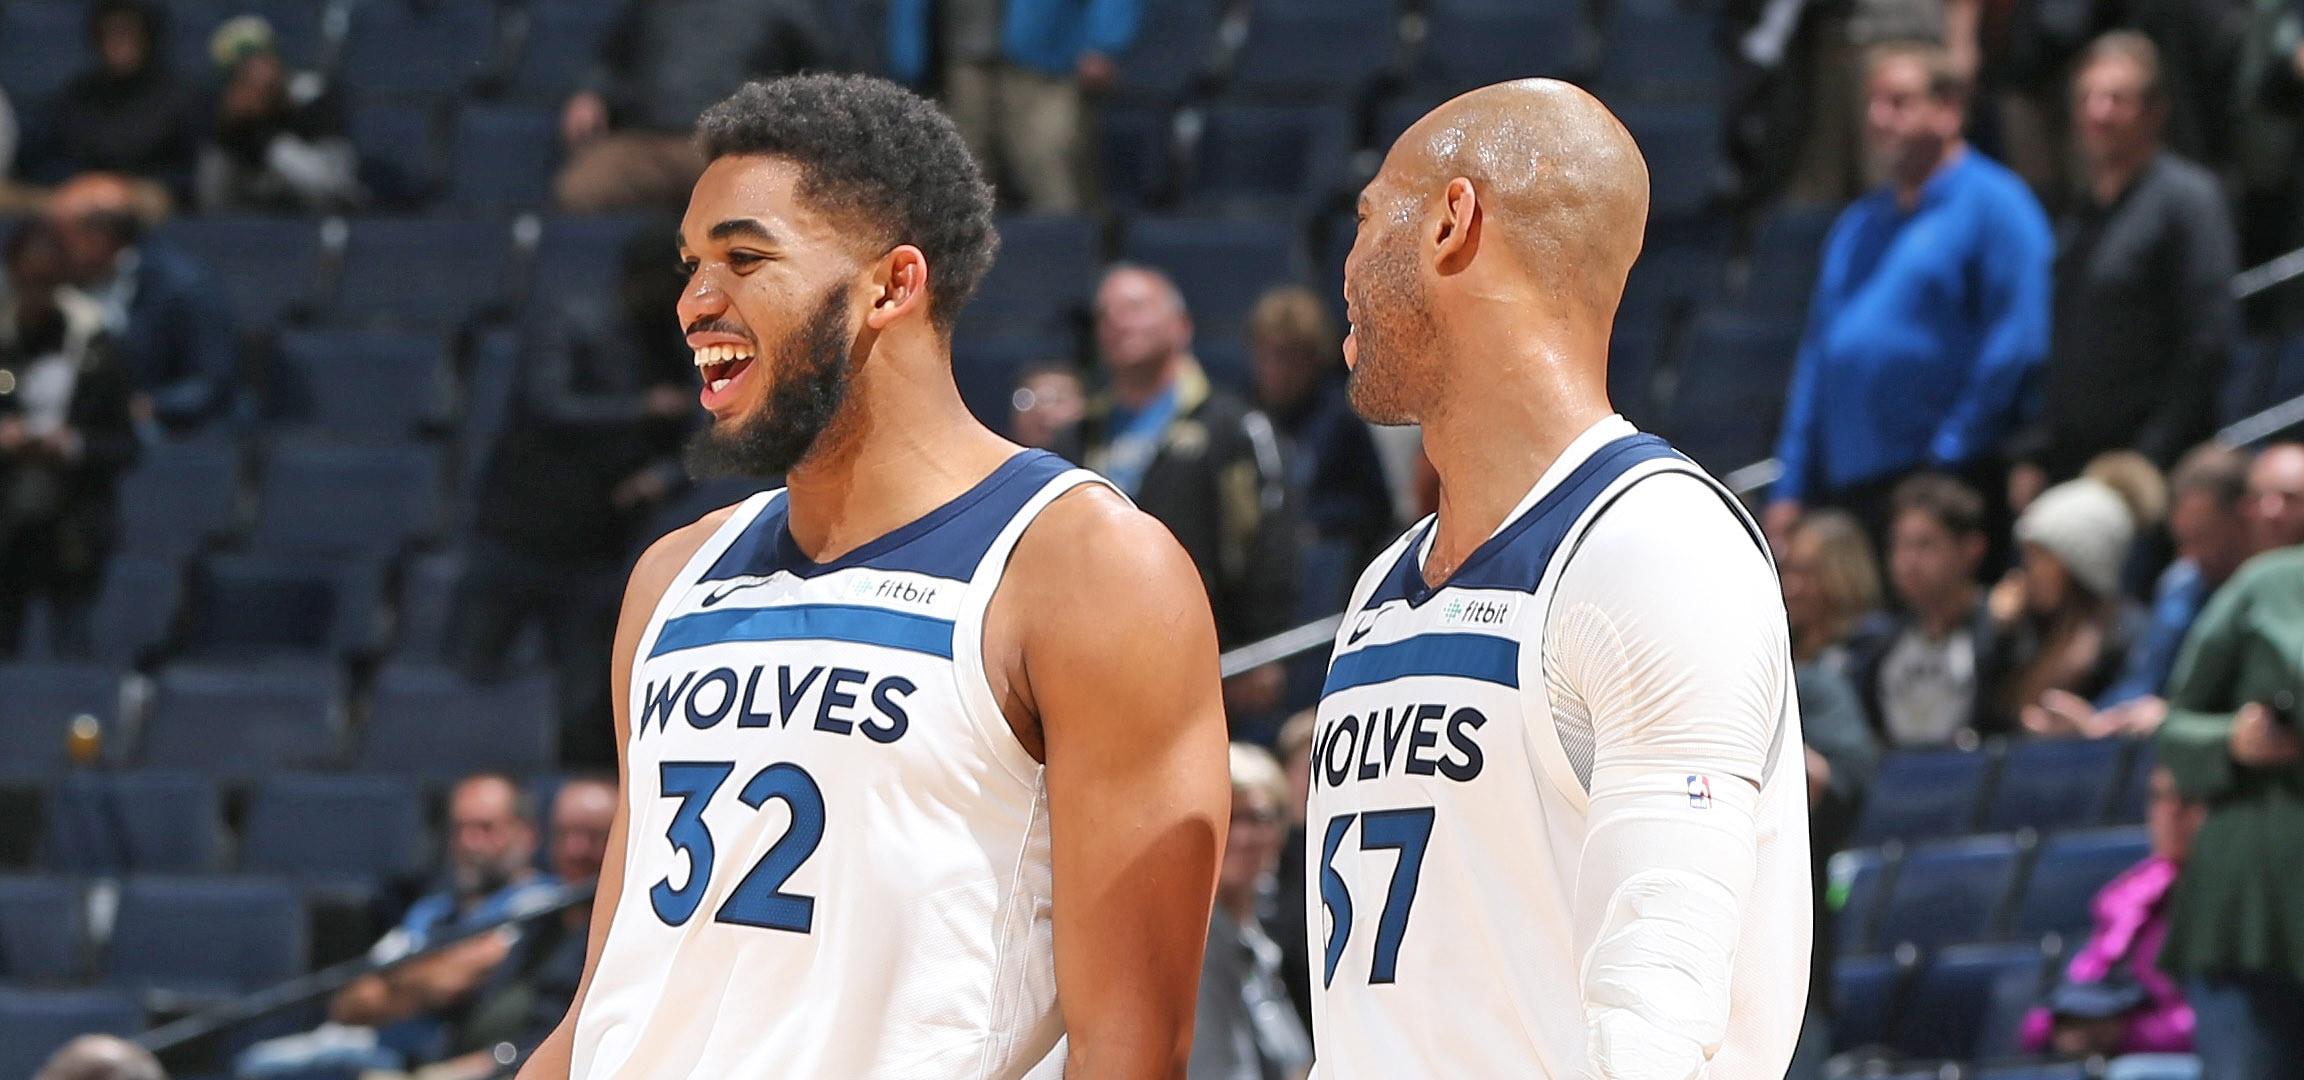 Wolves All Smiles In Team Win Over Pelicans  8c0dd5086